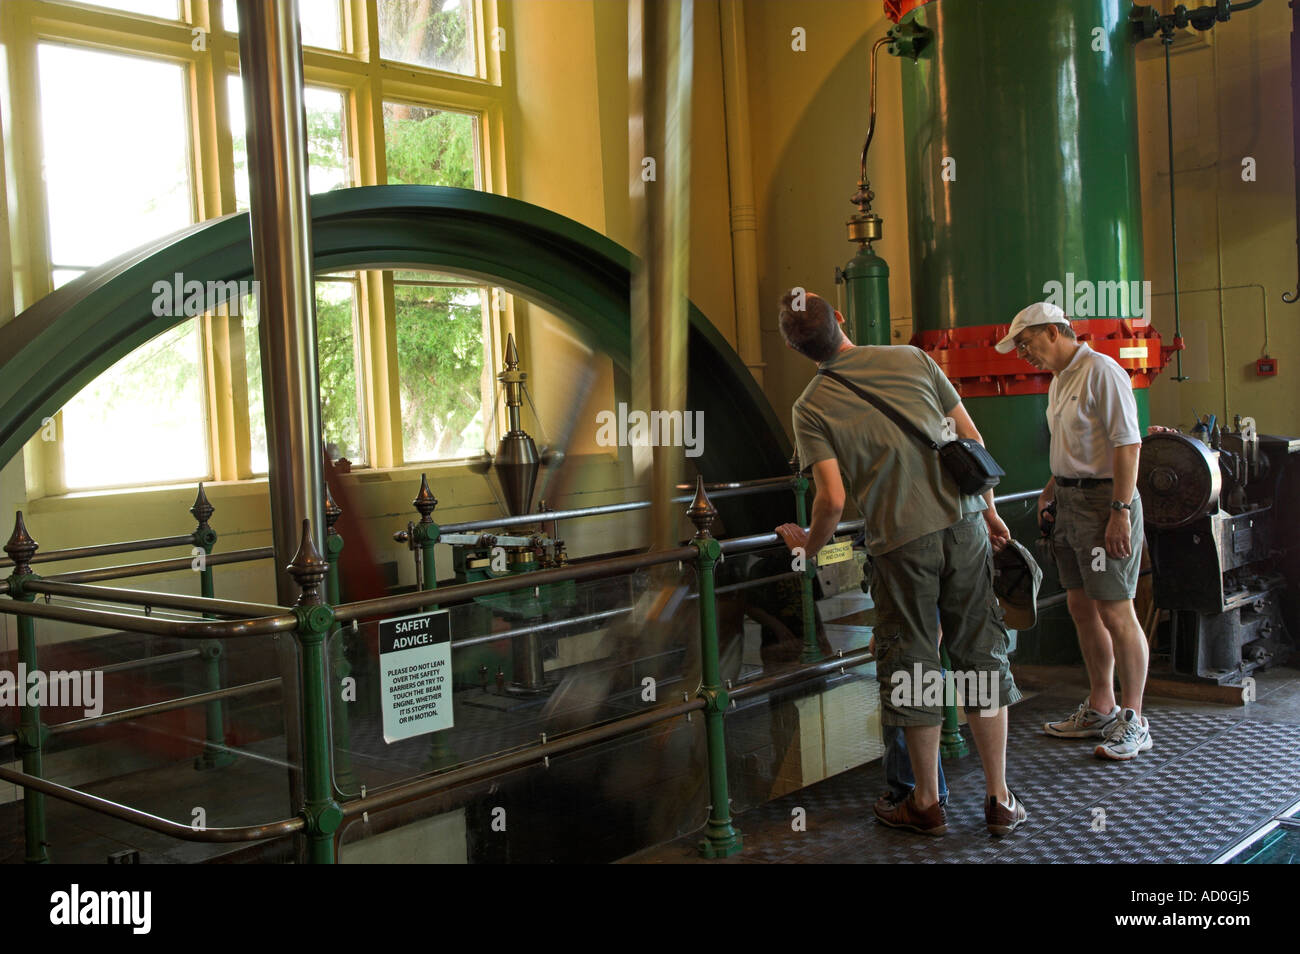 Steam driven beam engine Blagdon Lake water pumping station museum part of Bristol Waterworks - Stock Image